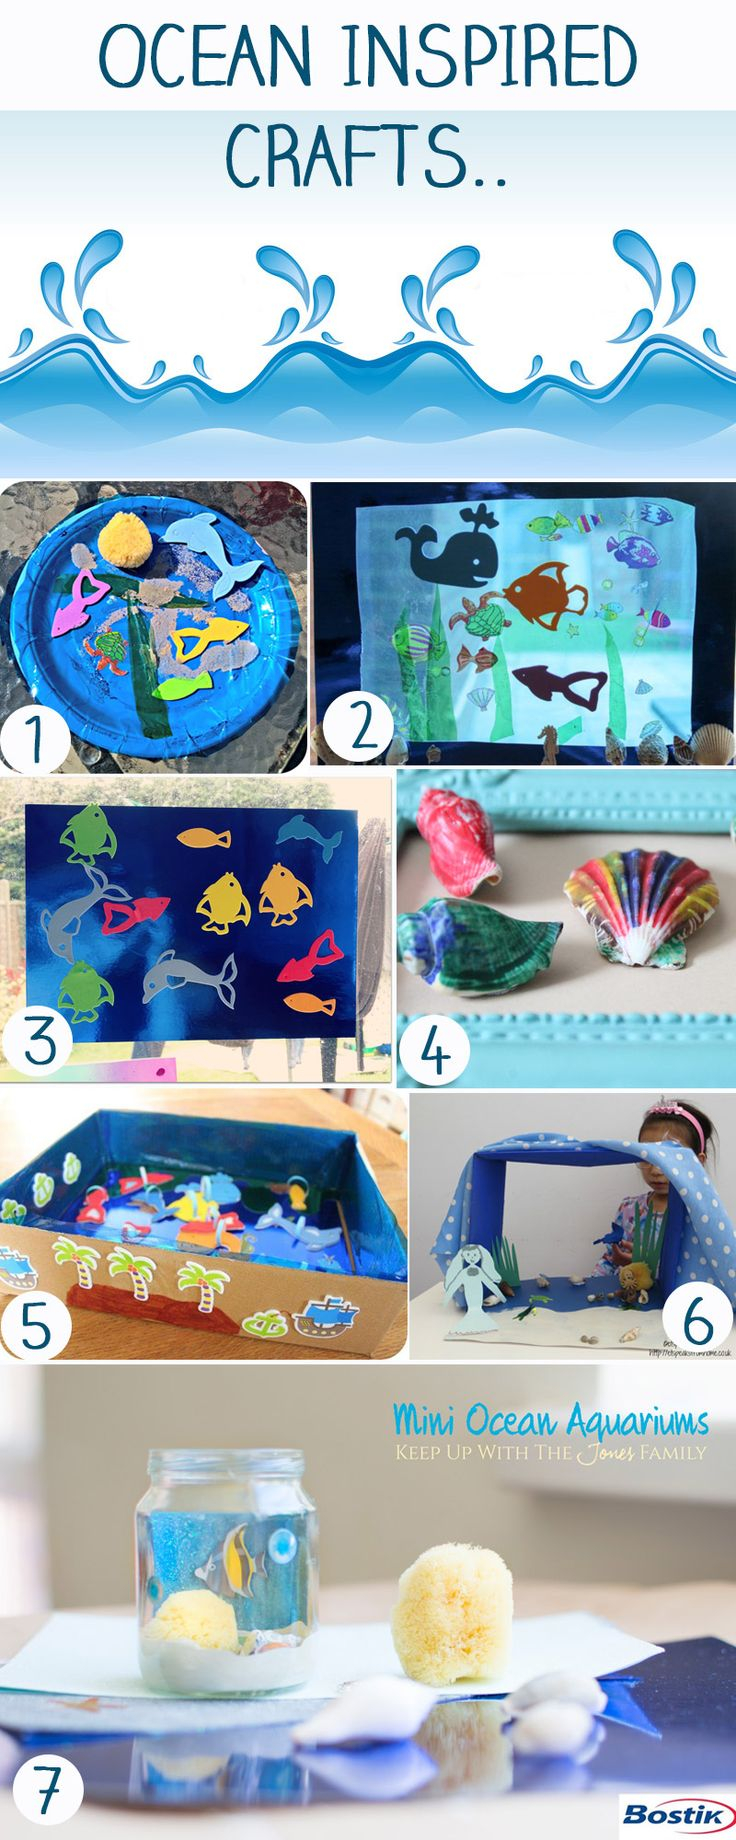 Ocean Inspired Crafts with Bostik